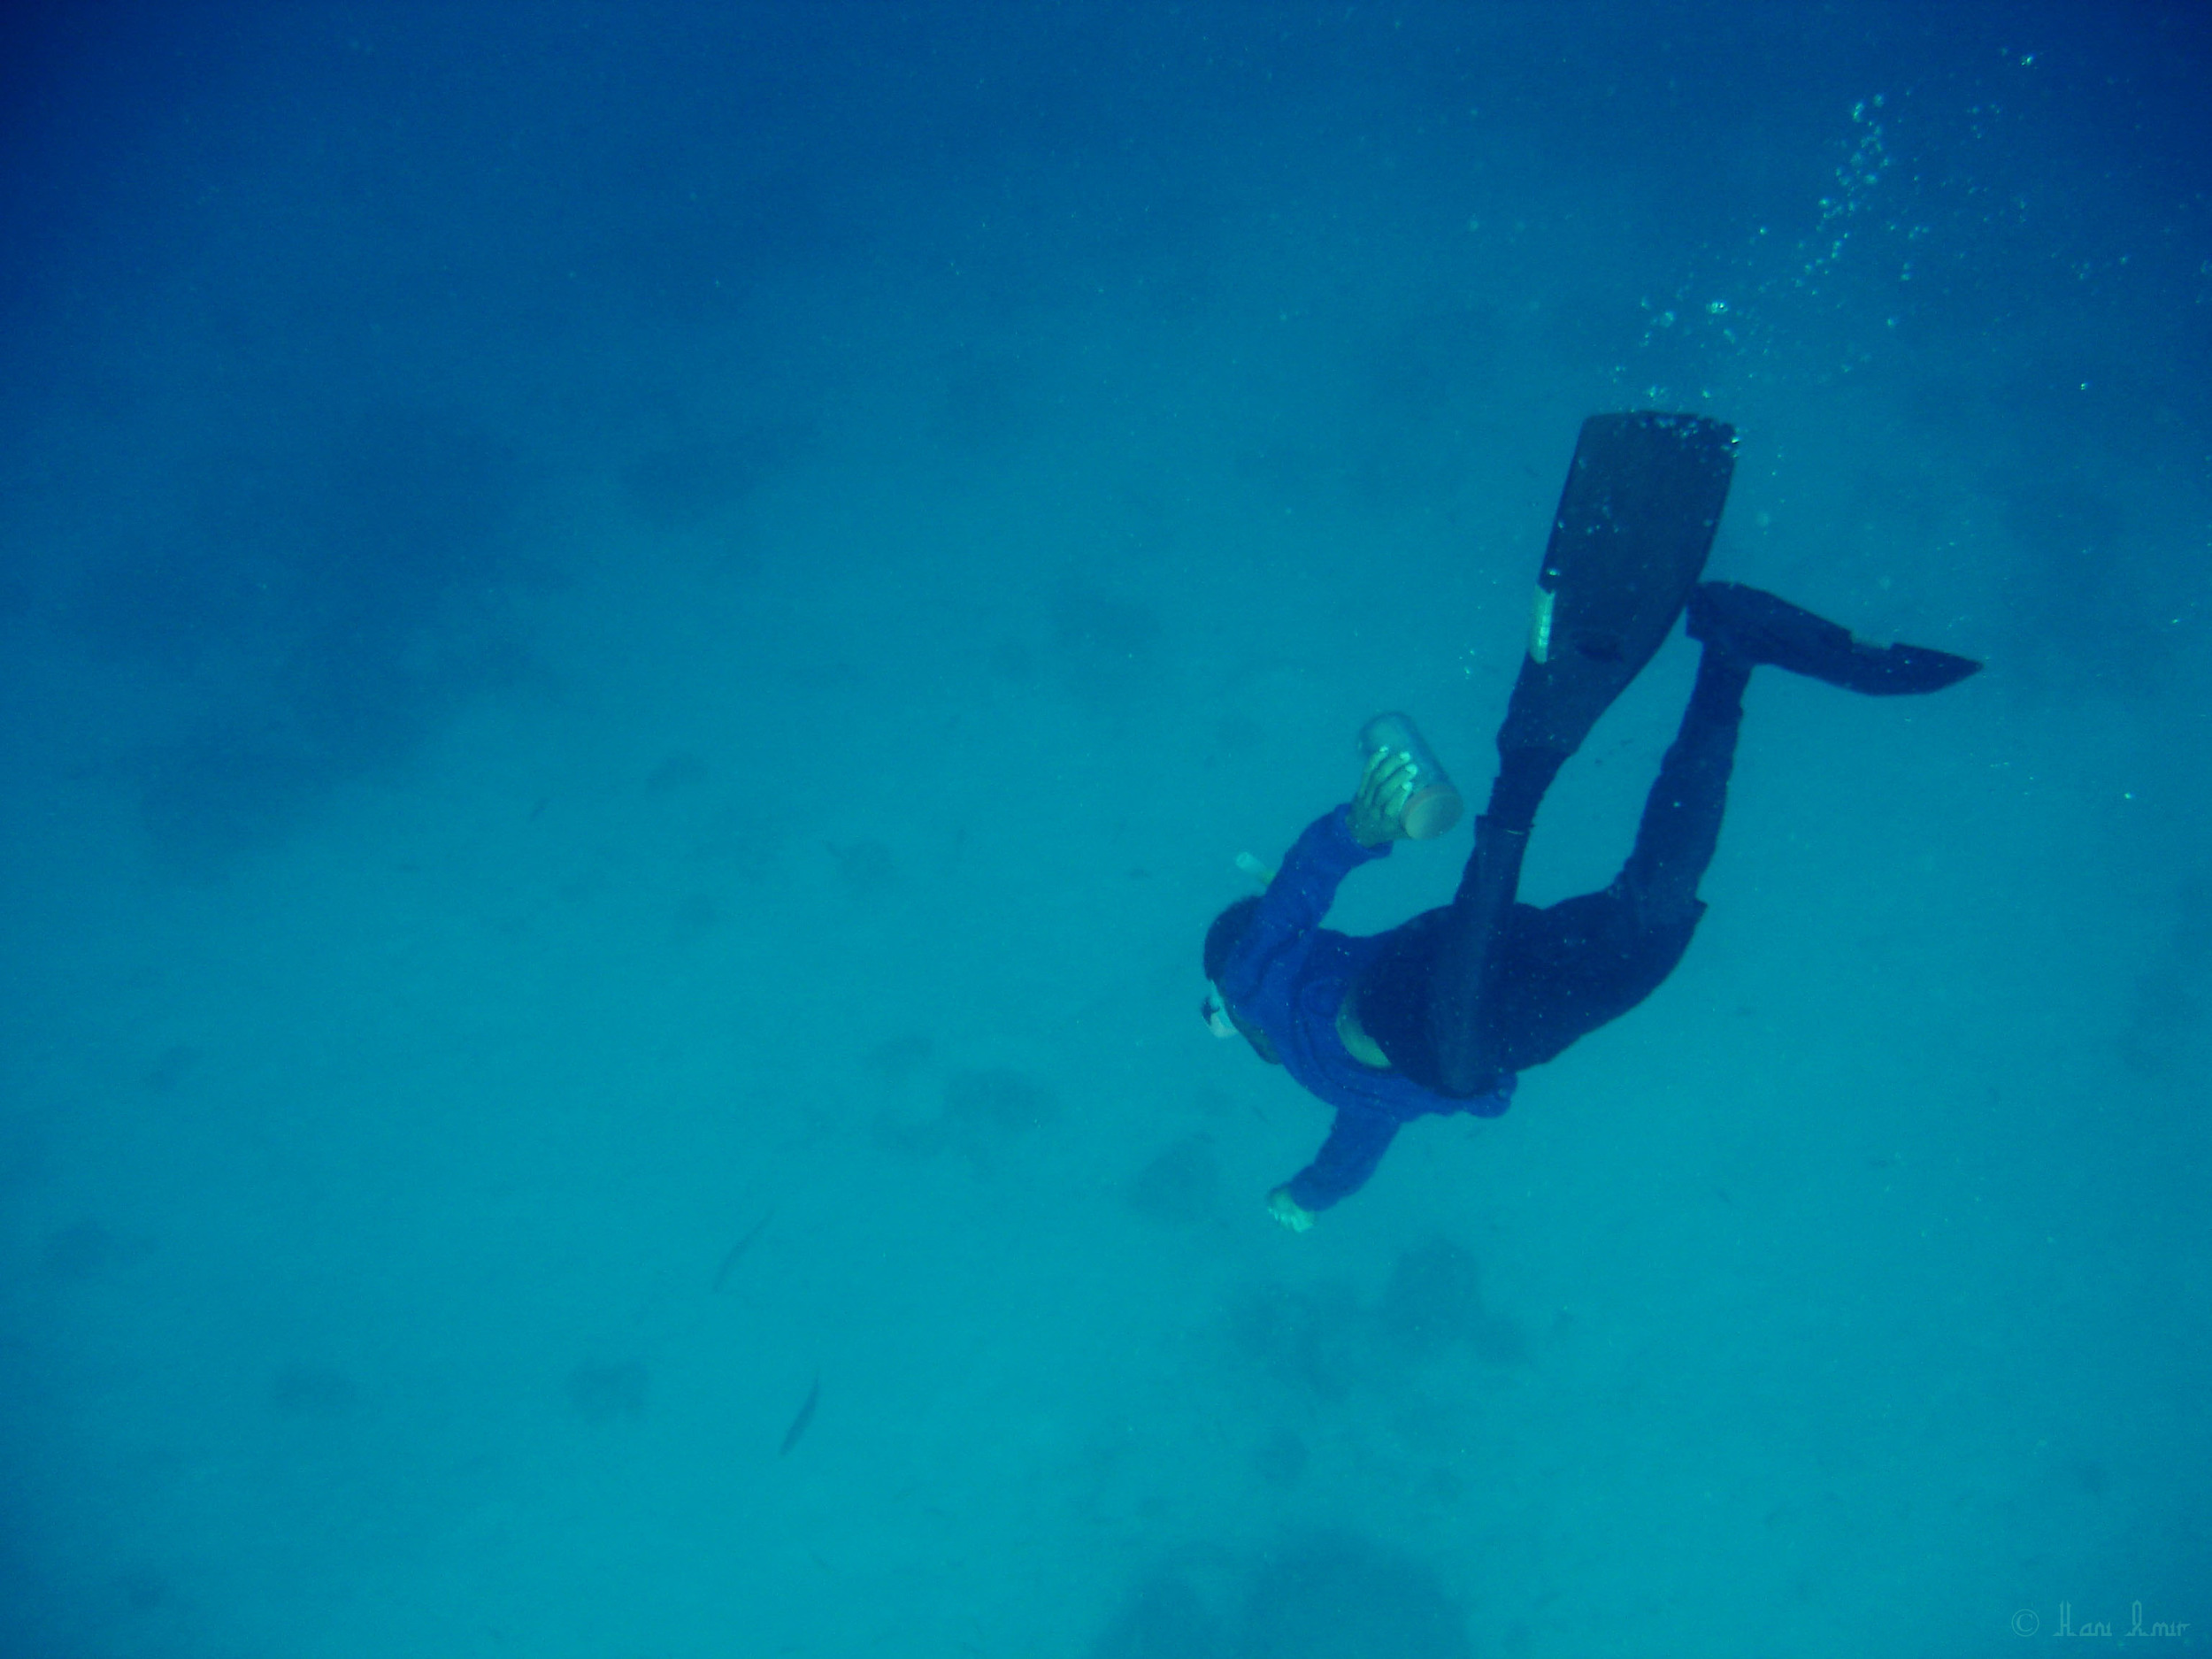 A slow and steady descent; almost to the bottom of reef.